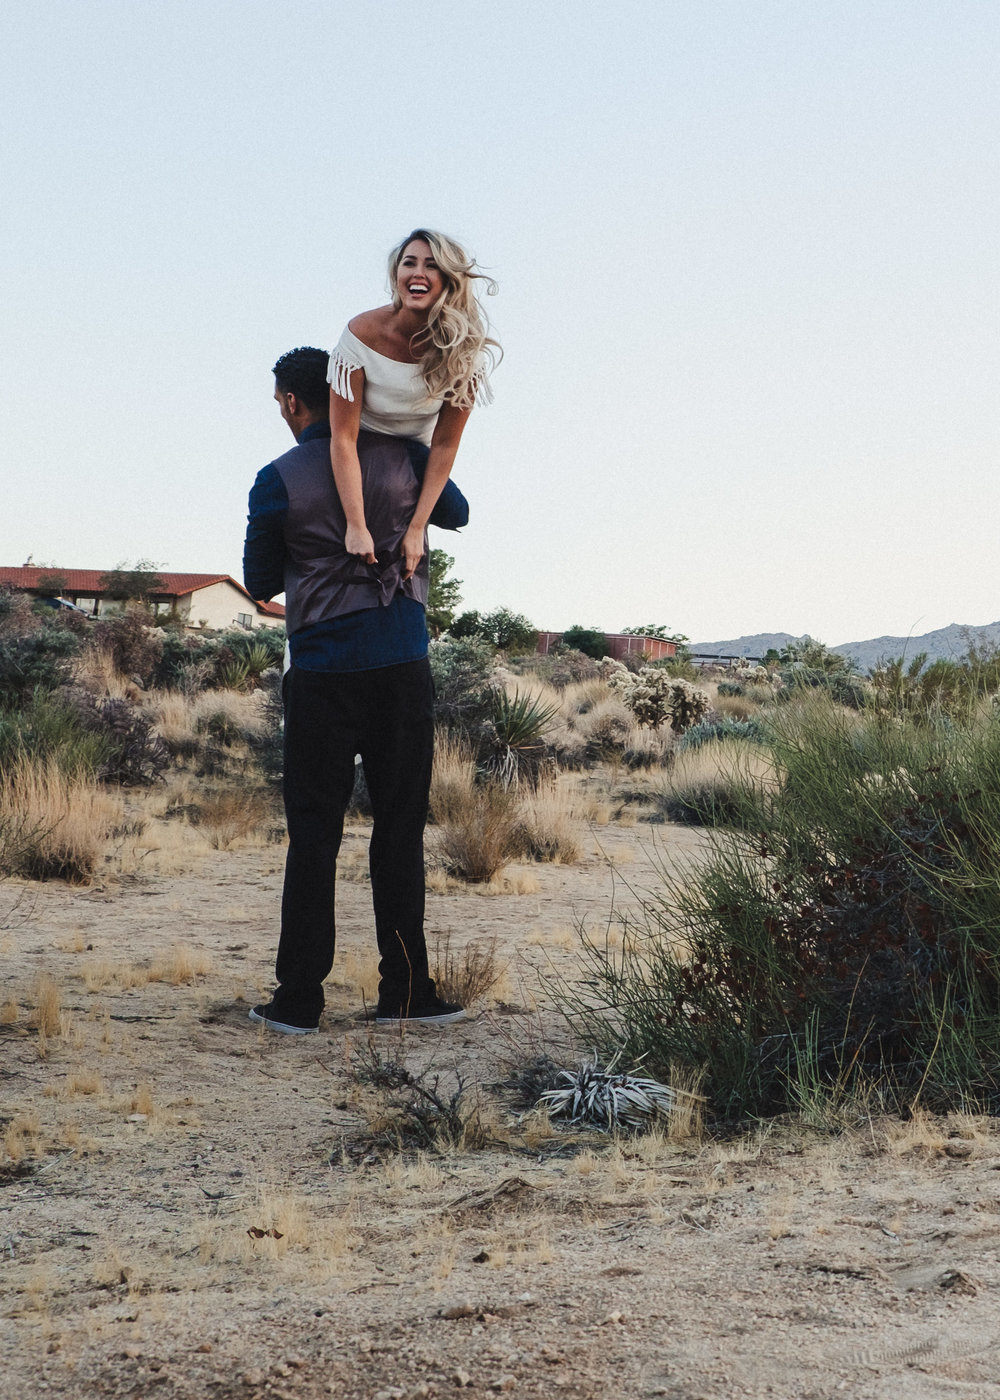 sKarlee + Jamall - Engagement Shoot, Joshua Tree CA-5.jpg